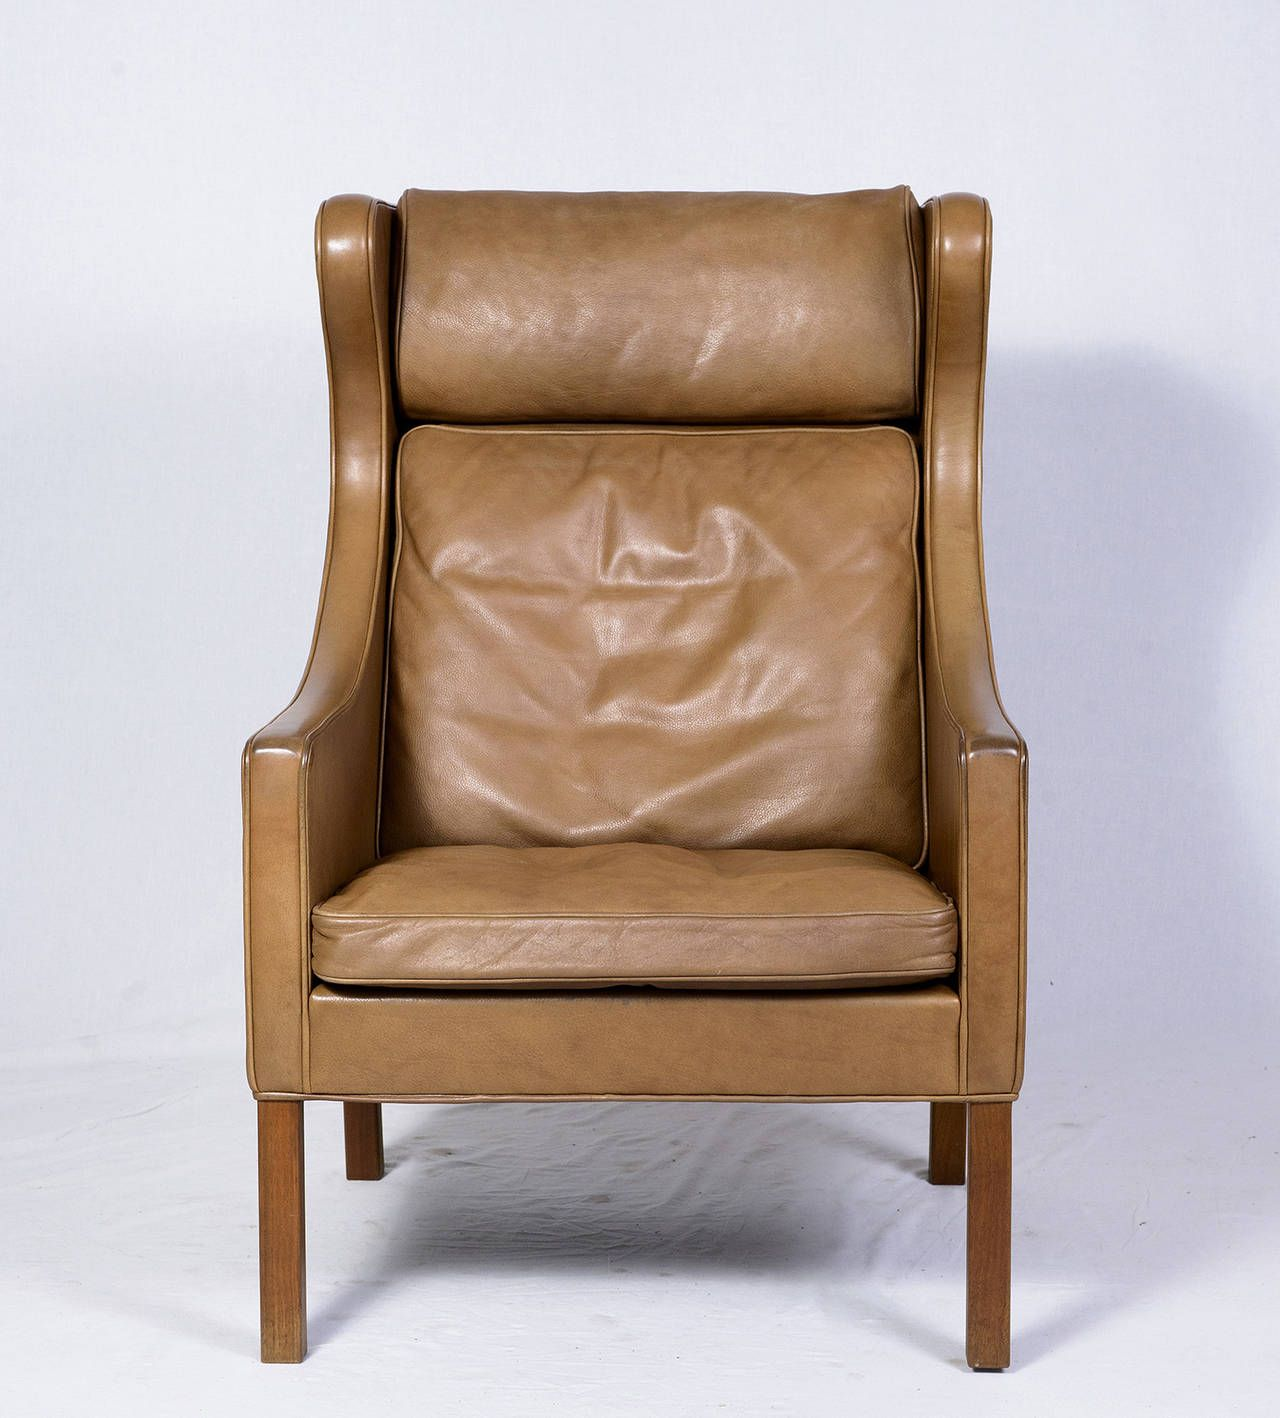 Børge Mogensen Leather Wingback Chair and Stool Leather